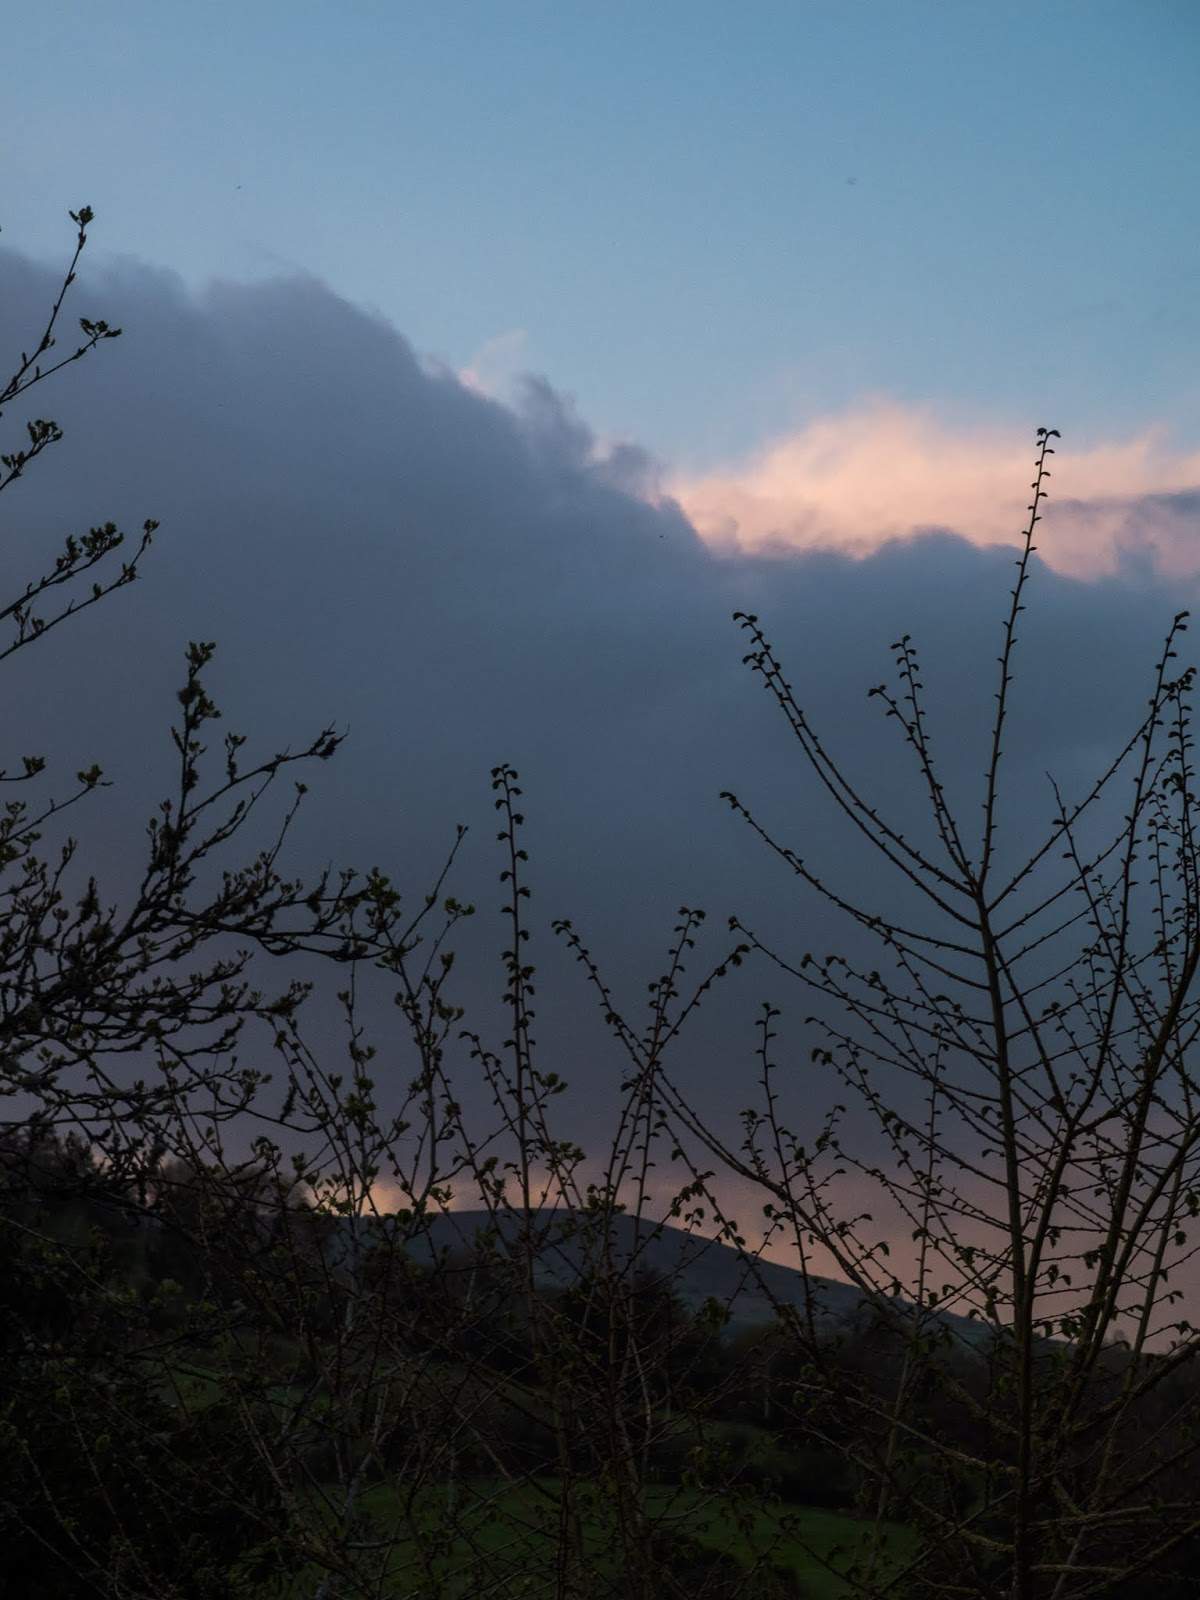 Dig dark cloud over a mountain hidden behind bare tree branches.